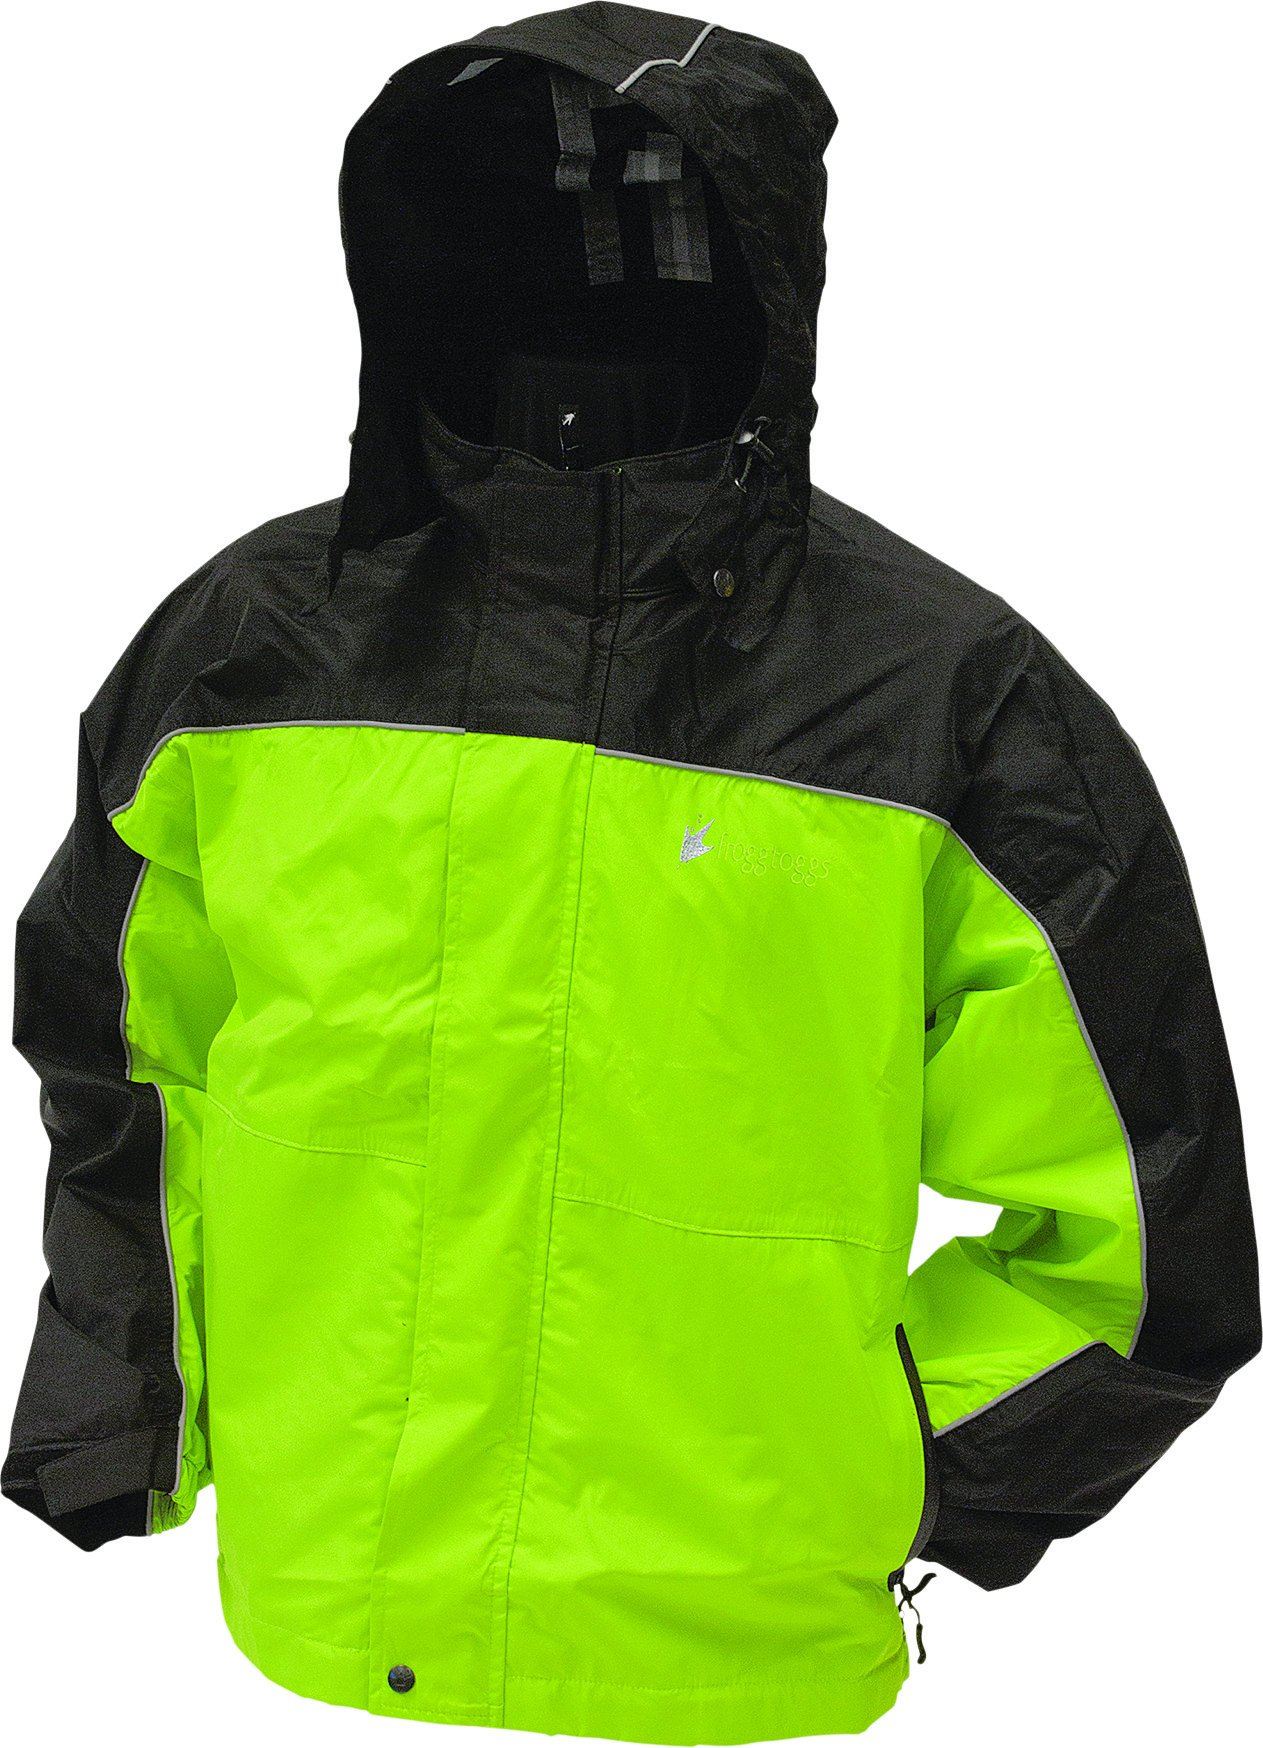 Frogg Toggs Yellow Toadz Highway Jacket, XL